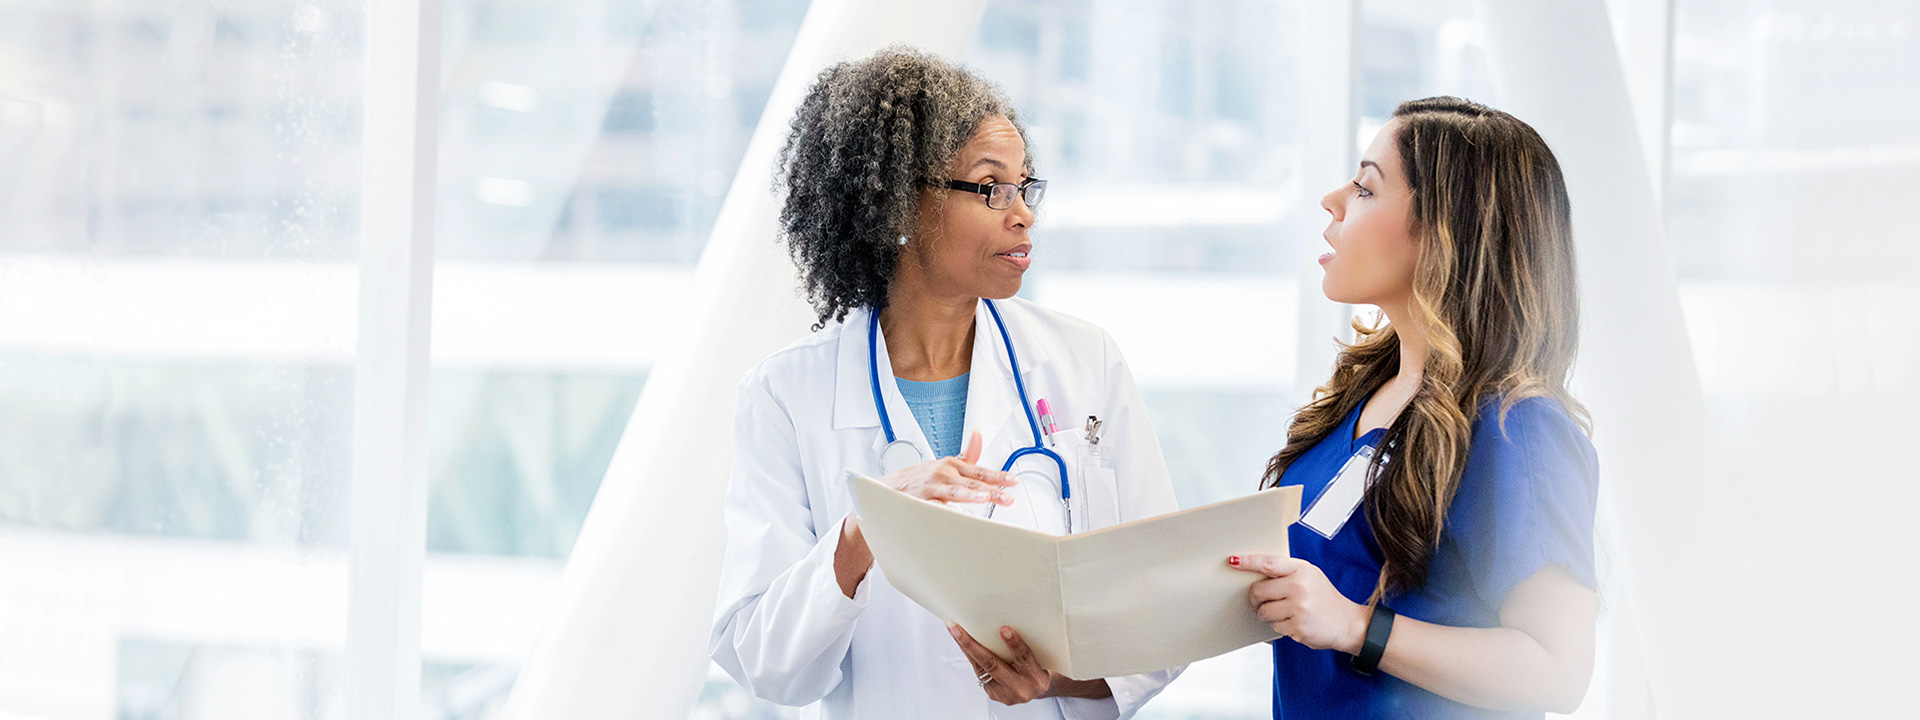 A doctor and nurse stand in a hallway discussing information in a folder